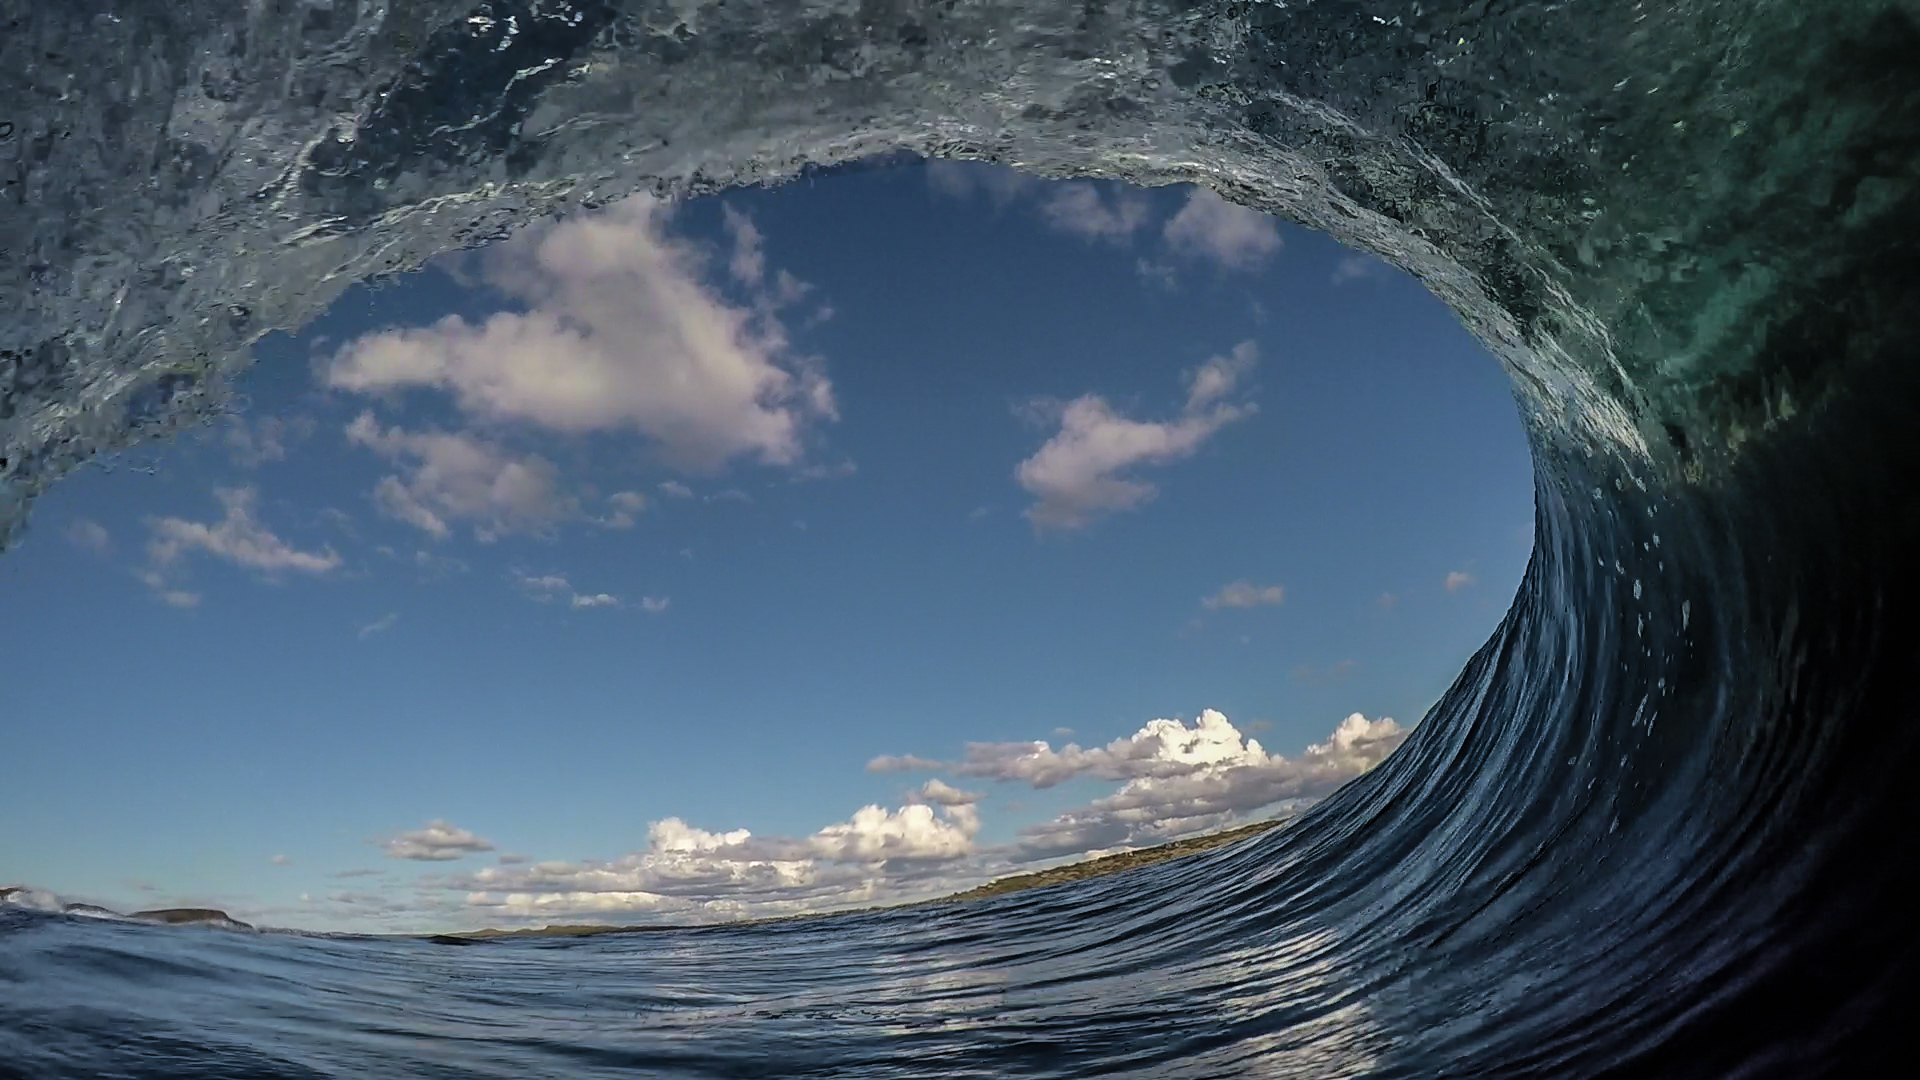 With images like this it makes you reevalute Norway's surfing potential.